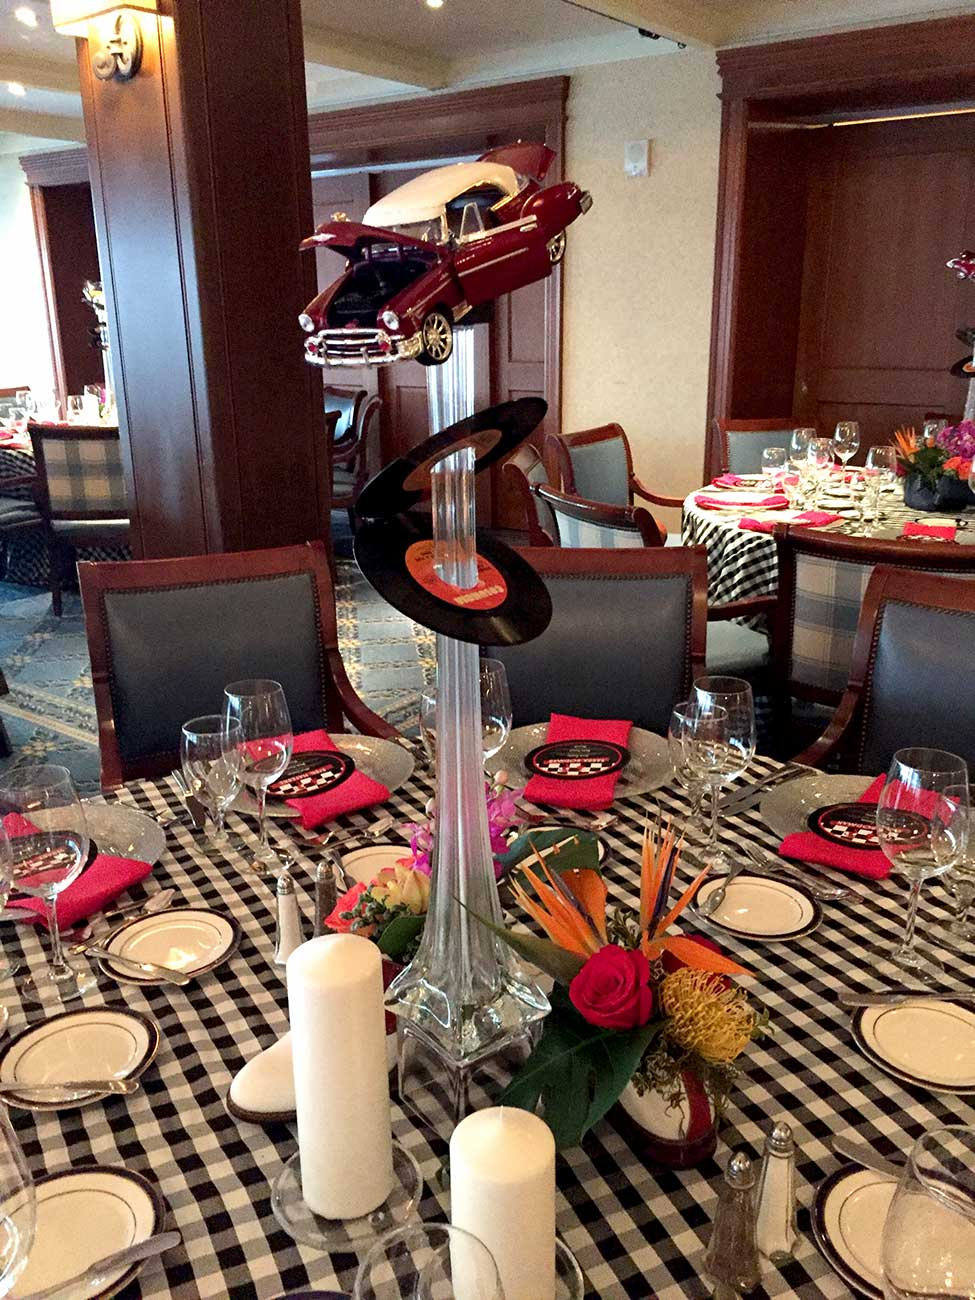 Tabletop decor in a 50's theme with dinnerware, crystal and a 50's car and record floral centerpiece